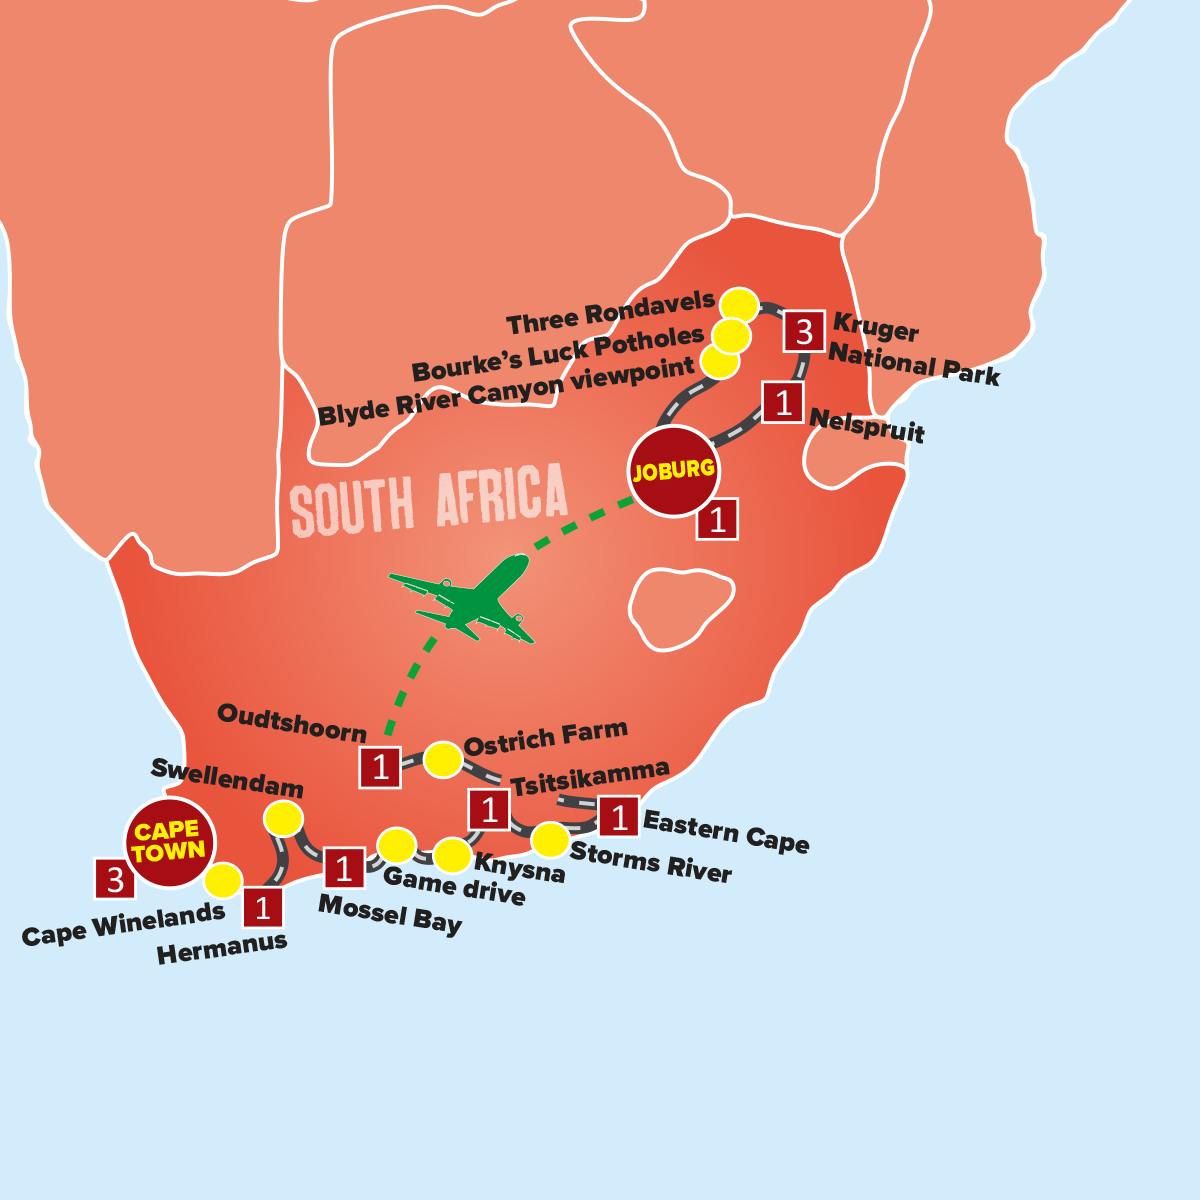 Panorama Route South Africa Map.South Africa Tours Safari Holiday Packages Expat Explore Travel